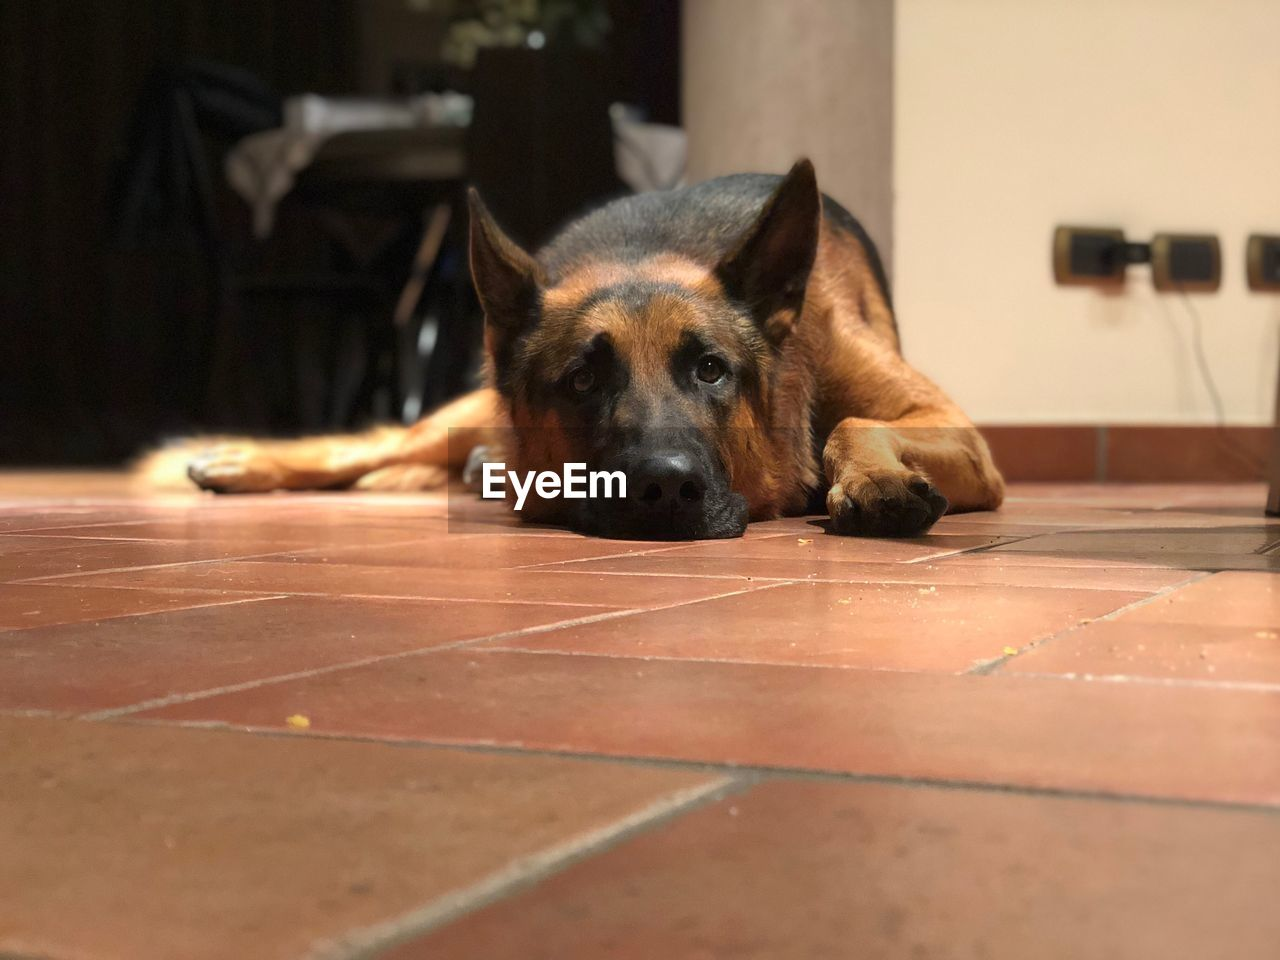 Dog relaxing on tiled floor at home